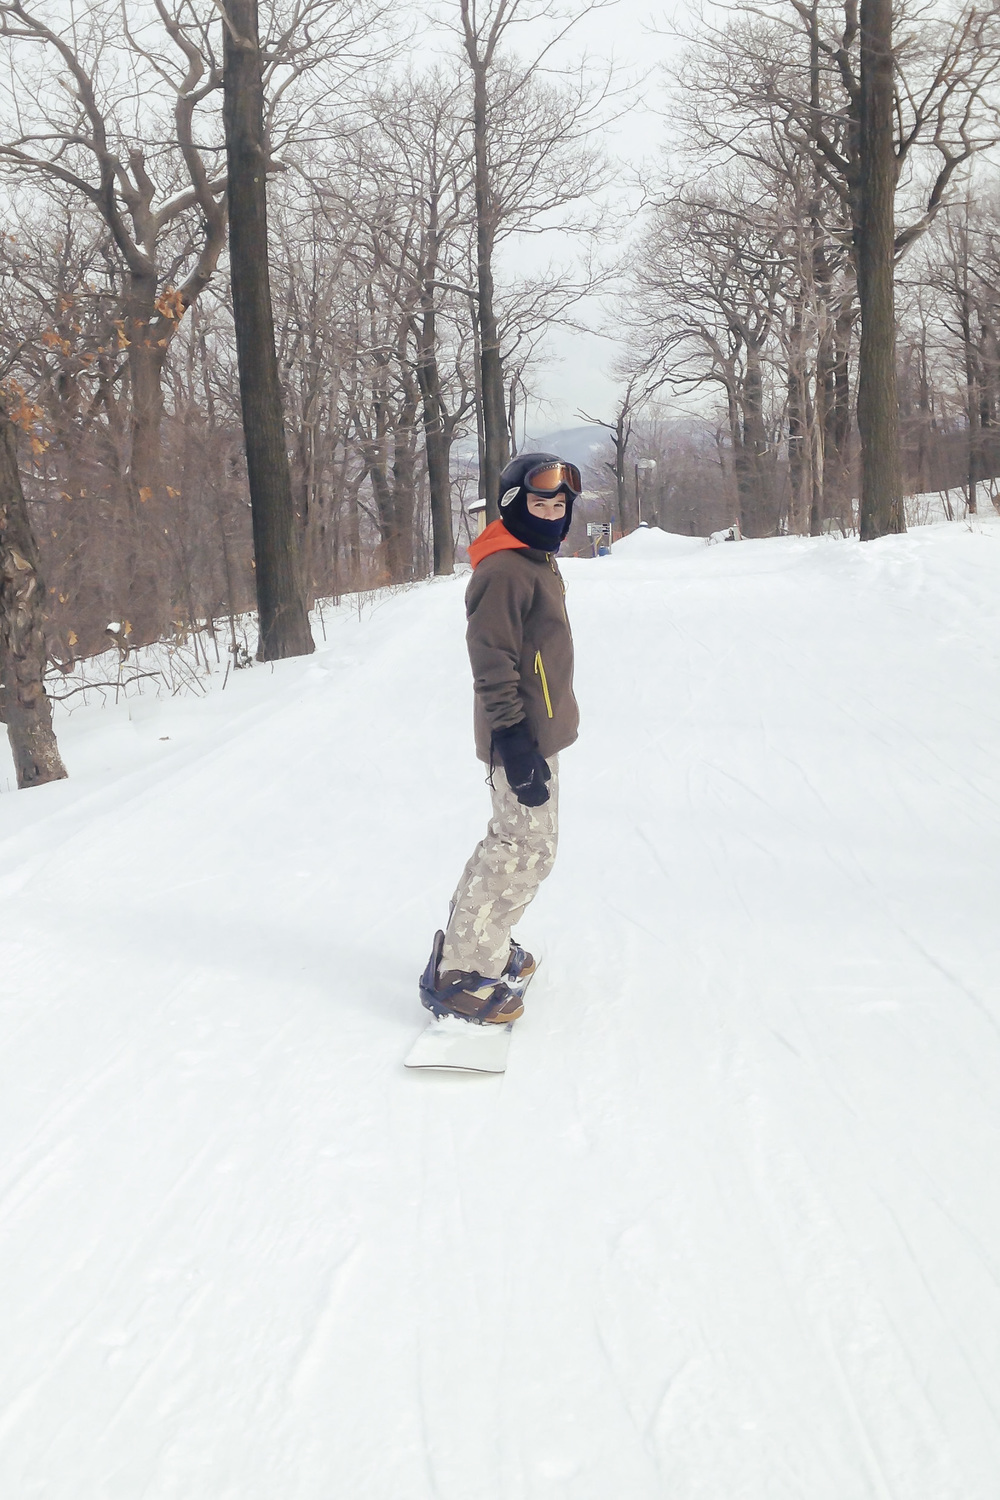 sam, sunday, february 9, twenty fourteen snowboarding